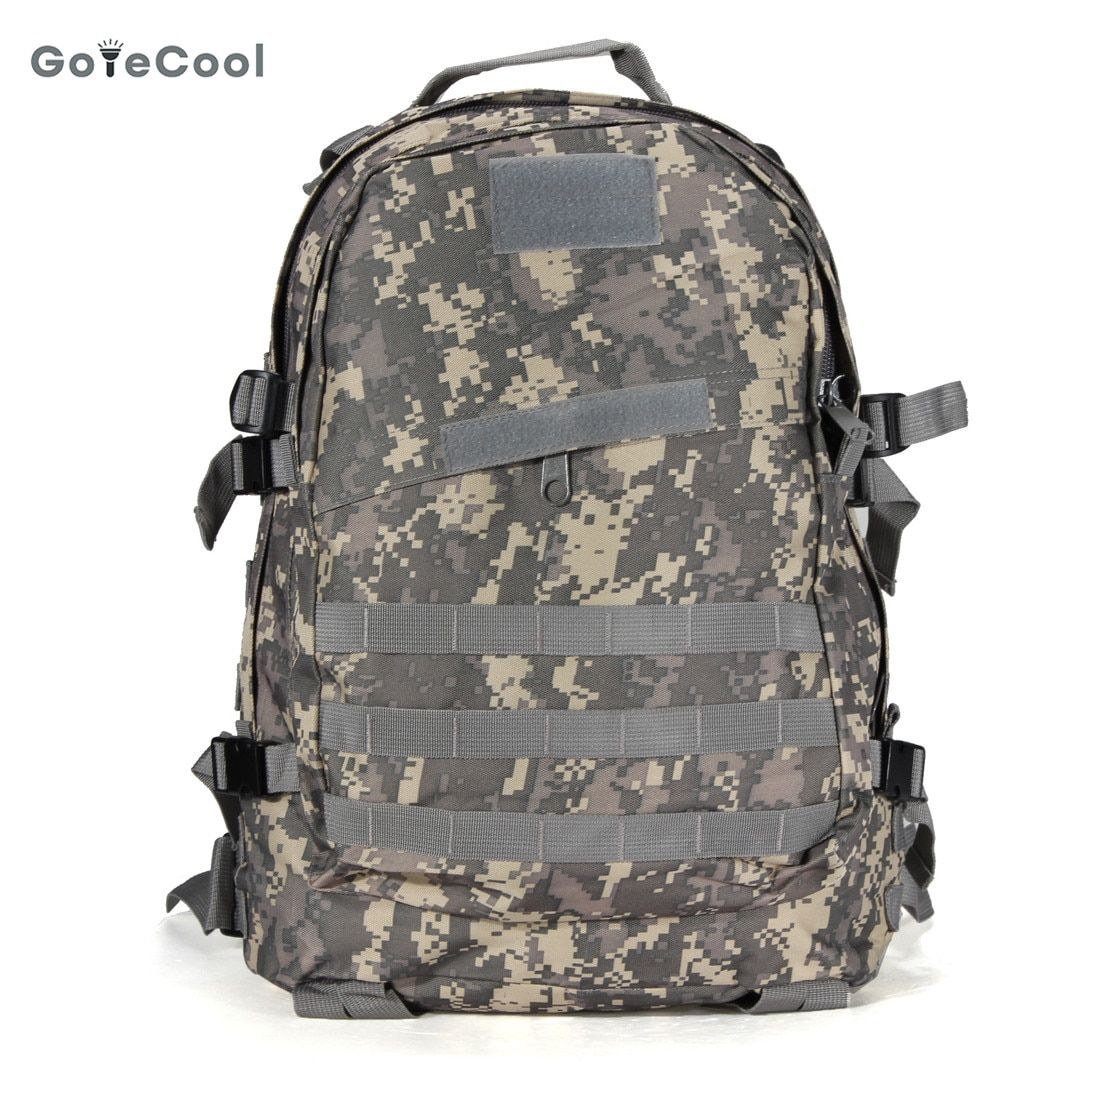 40L 3D Outdoor Sport Military Tactical climbing mountaineering Backpack Camping <font><b>Hiking</b></font> Trekking Rucksack Travel outdoor Bag